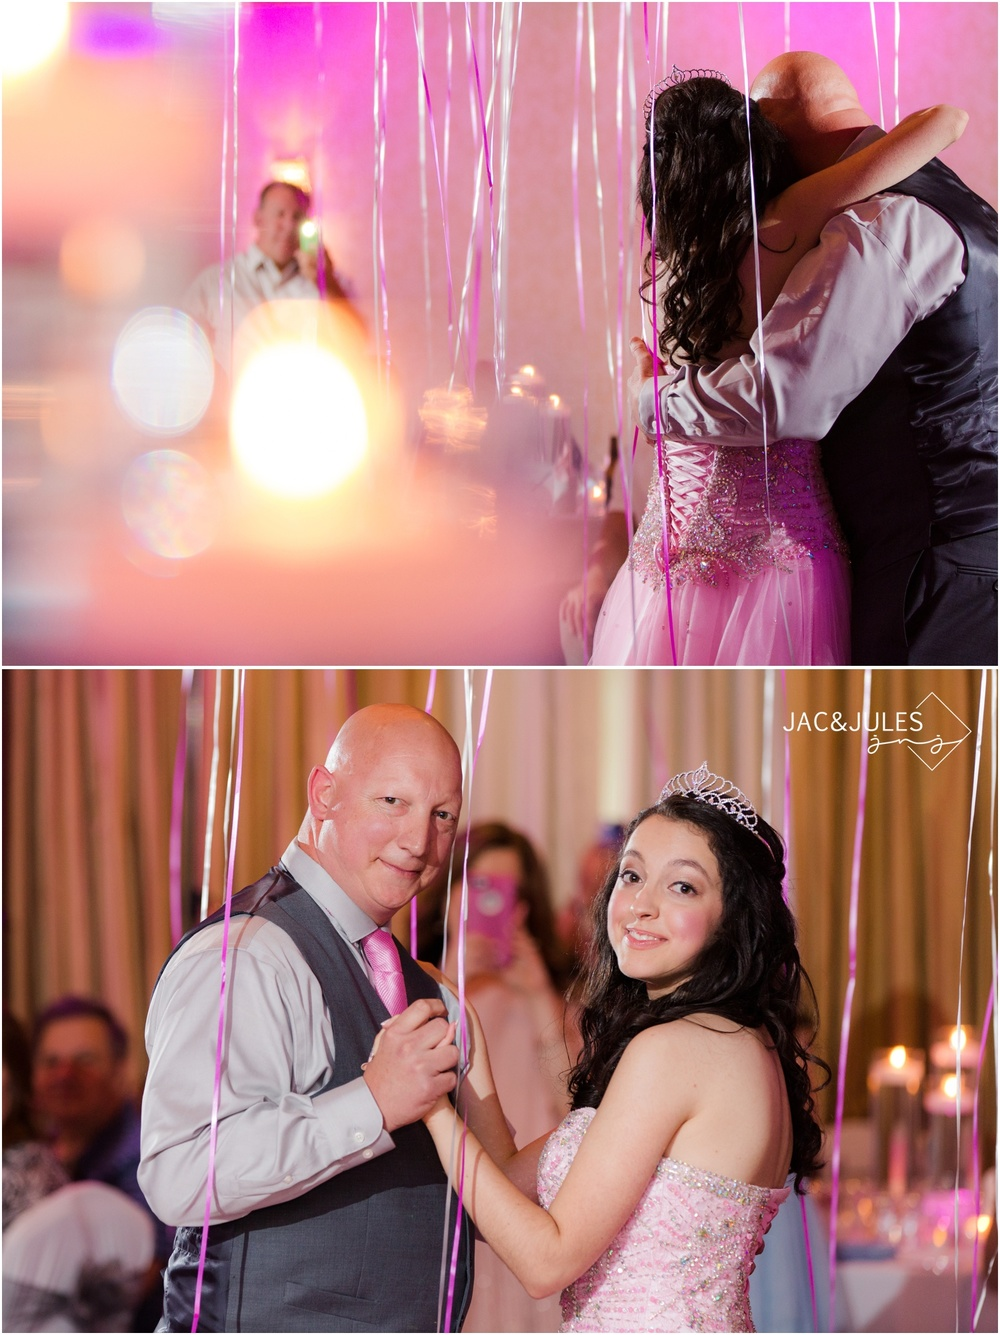 Father daughter dance at sweet sixteen party in Toms River, NJ.